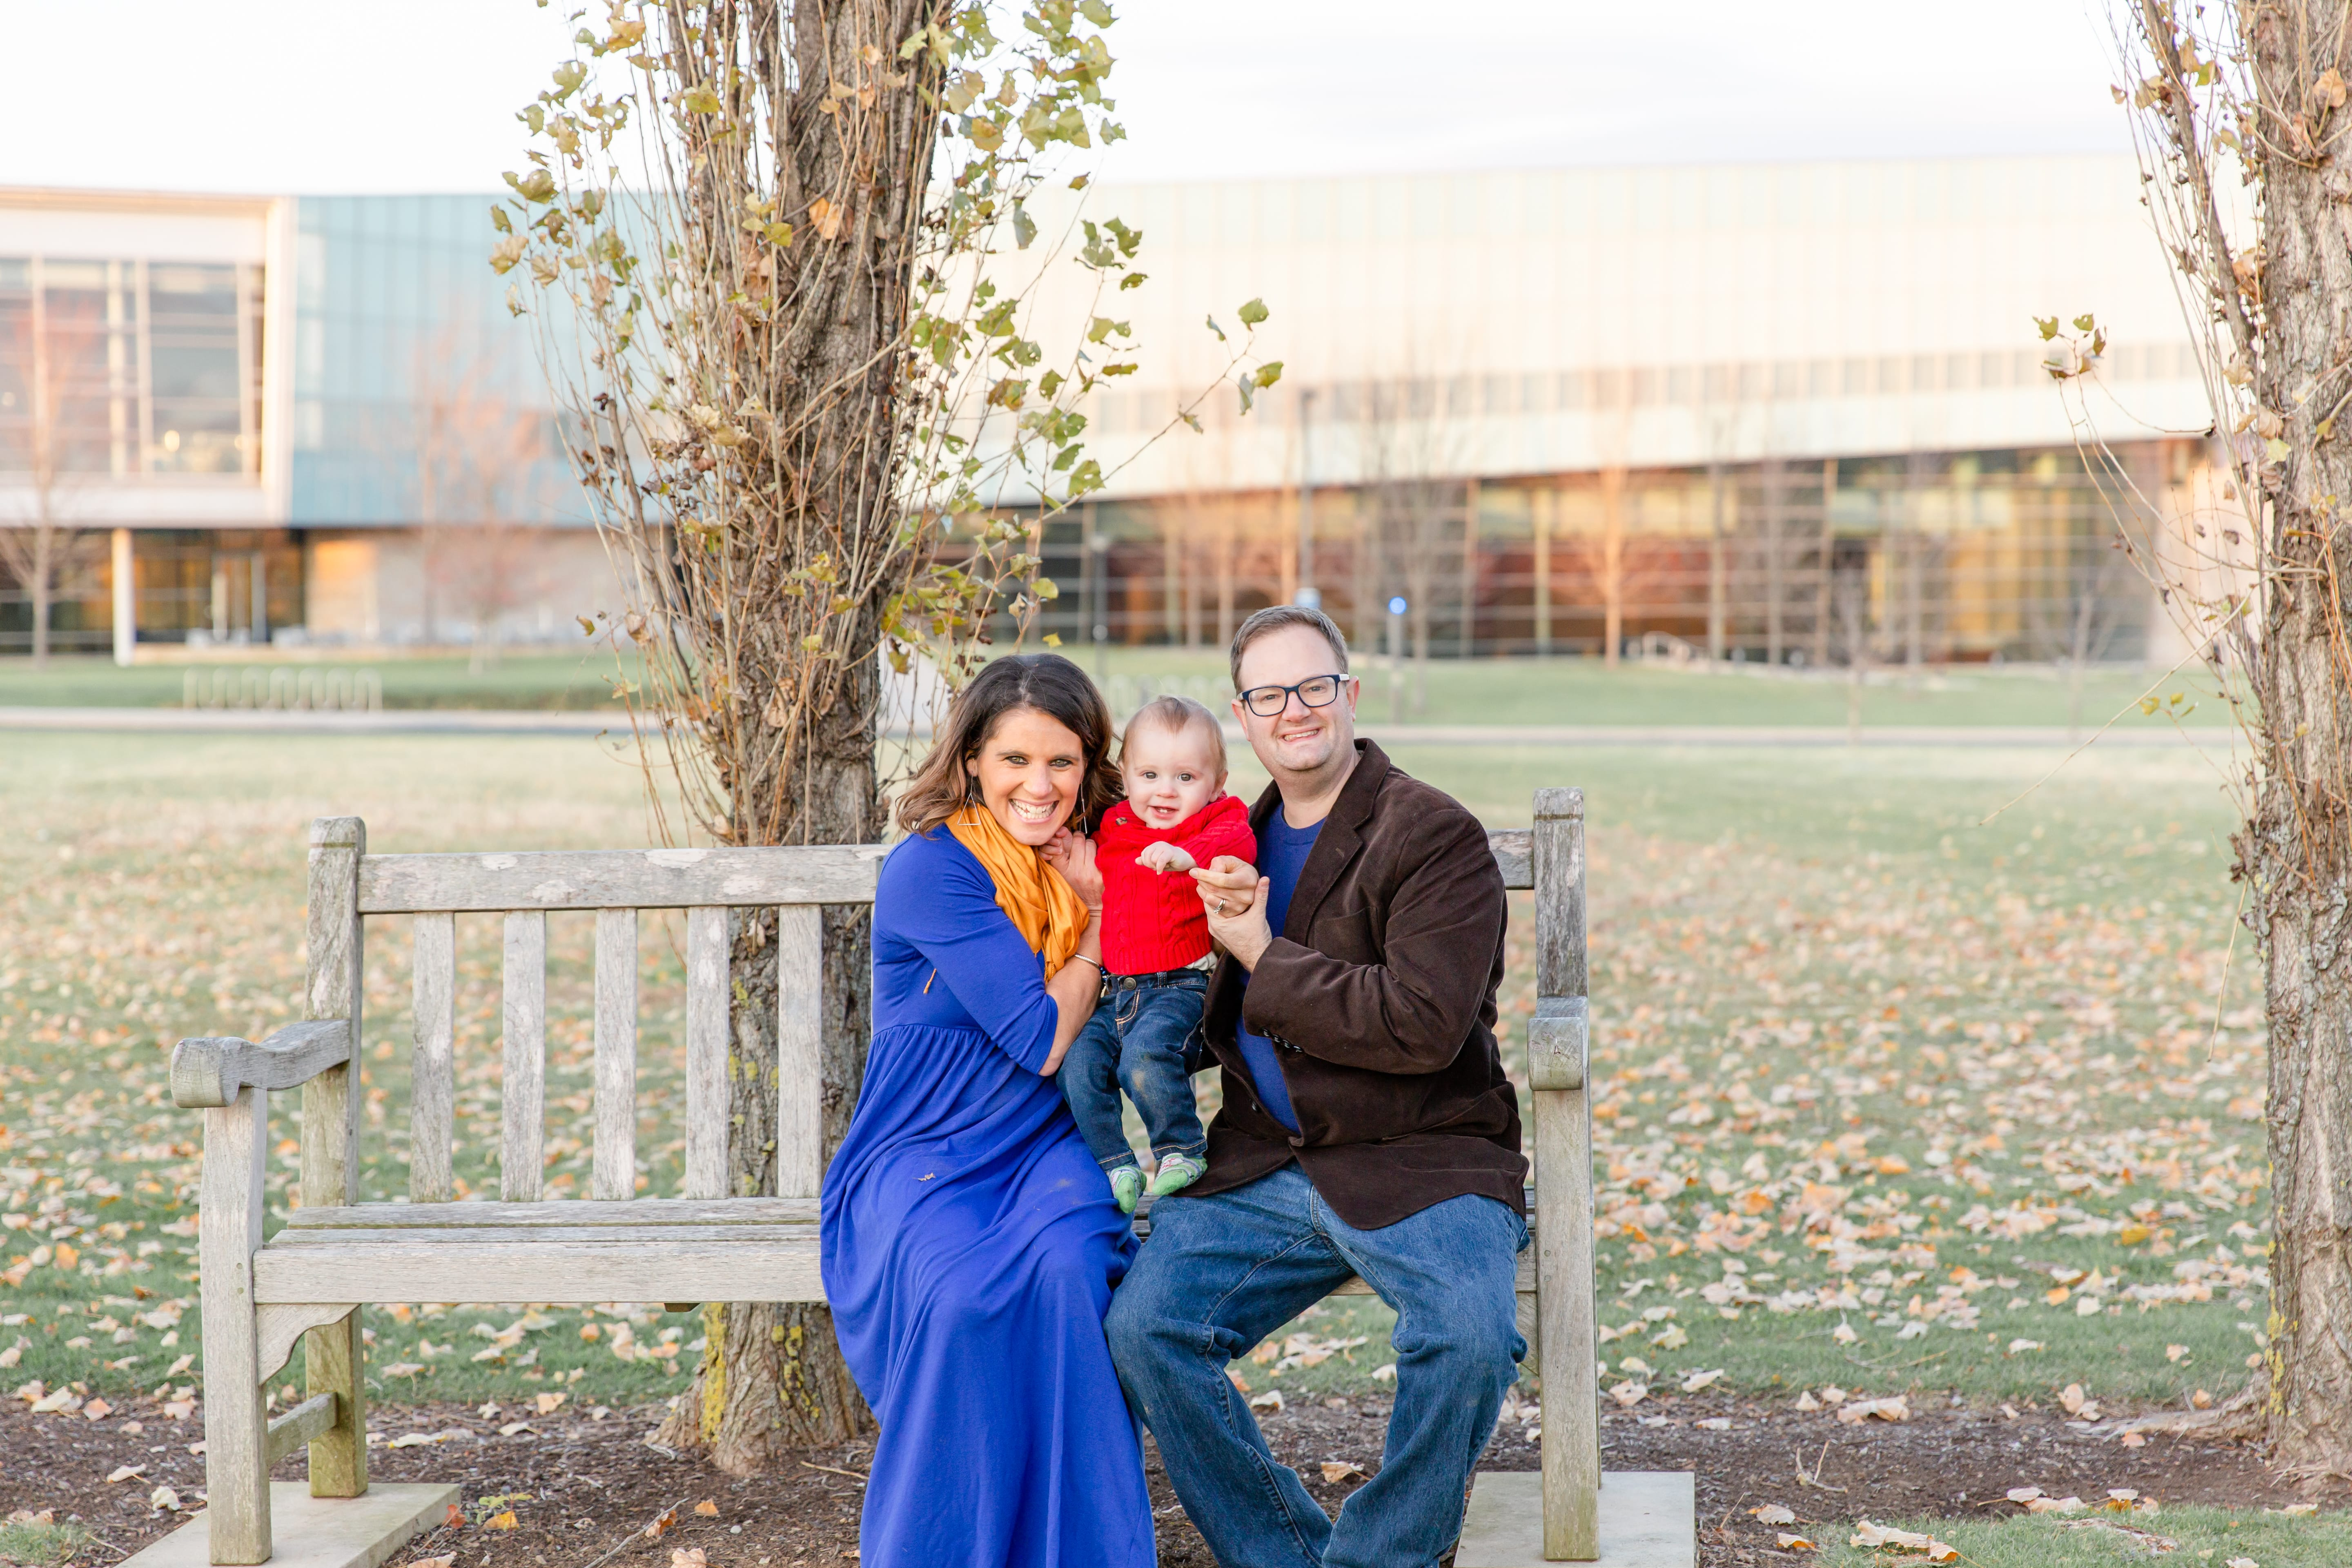 Fall family photo in State College at Penn State arboretum